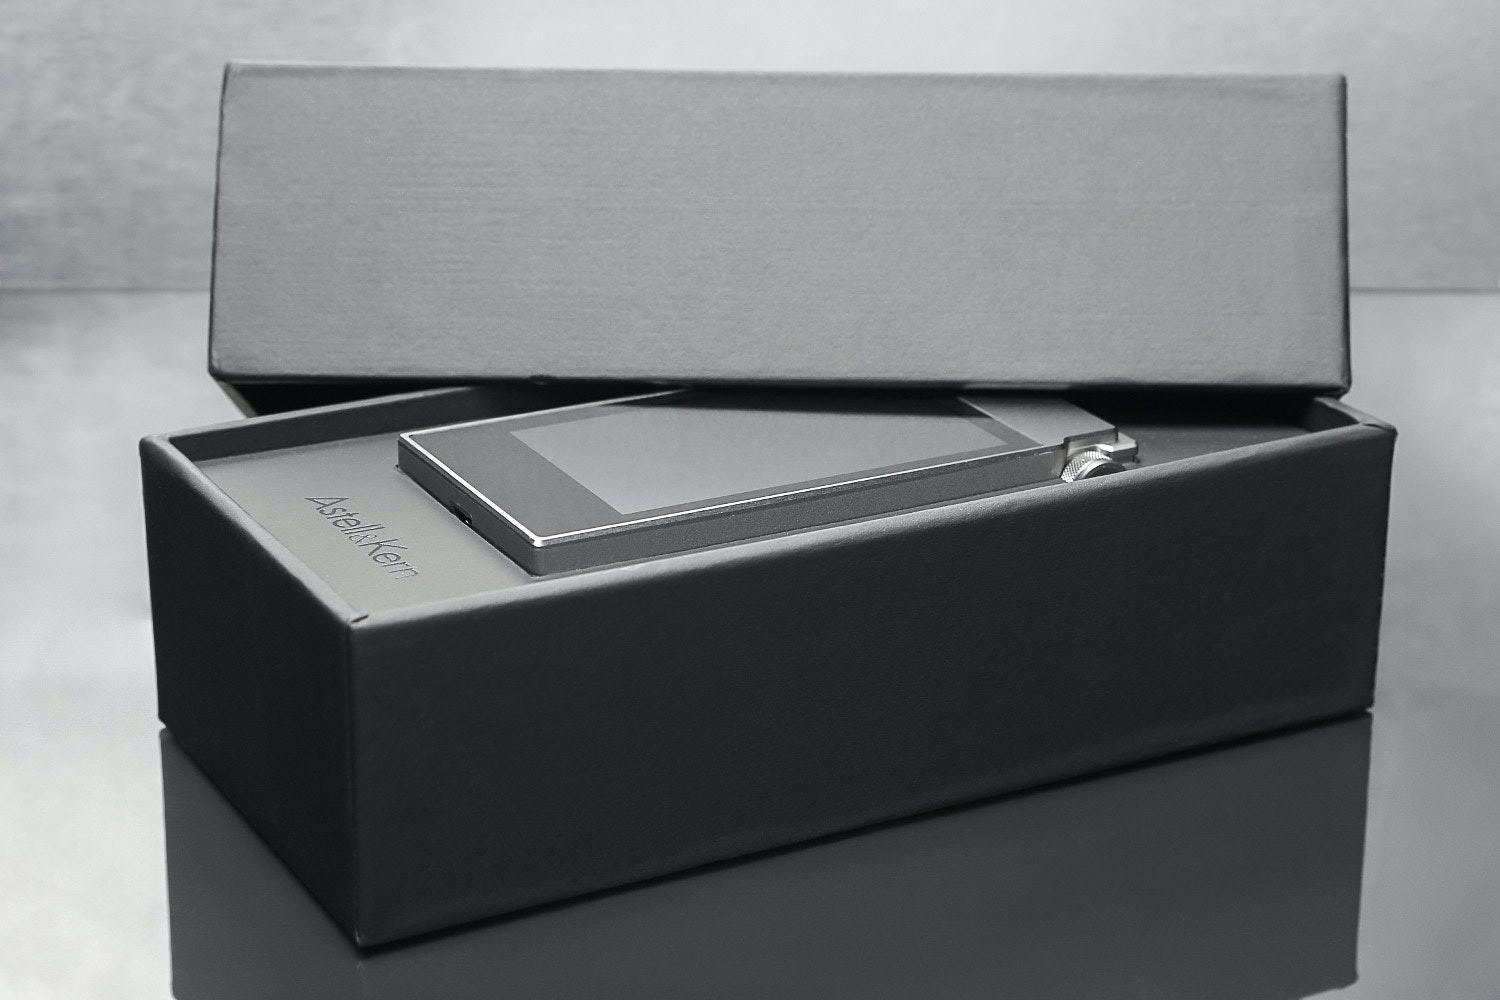 Astell&Kern AK100II Digital Audio Player